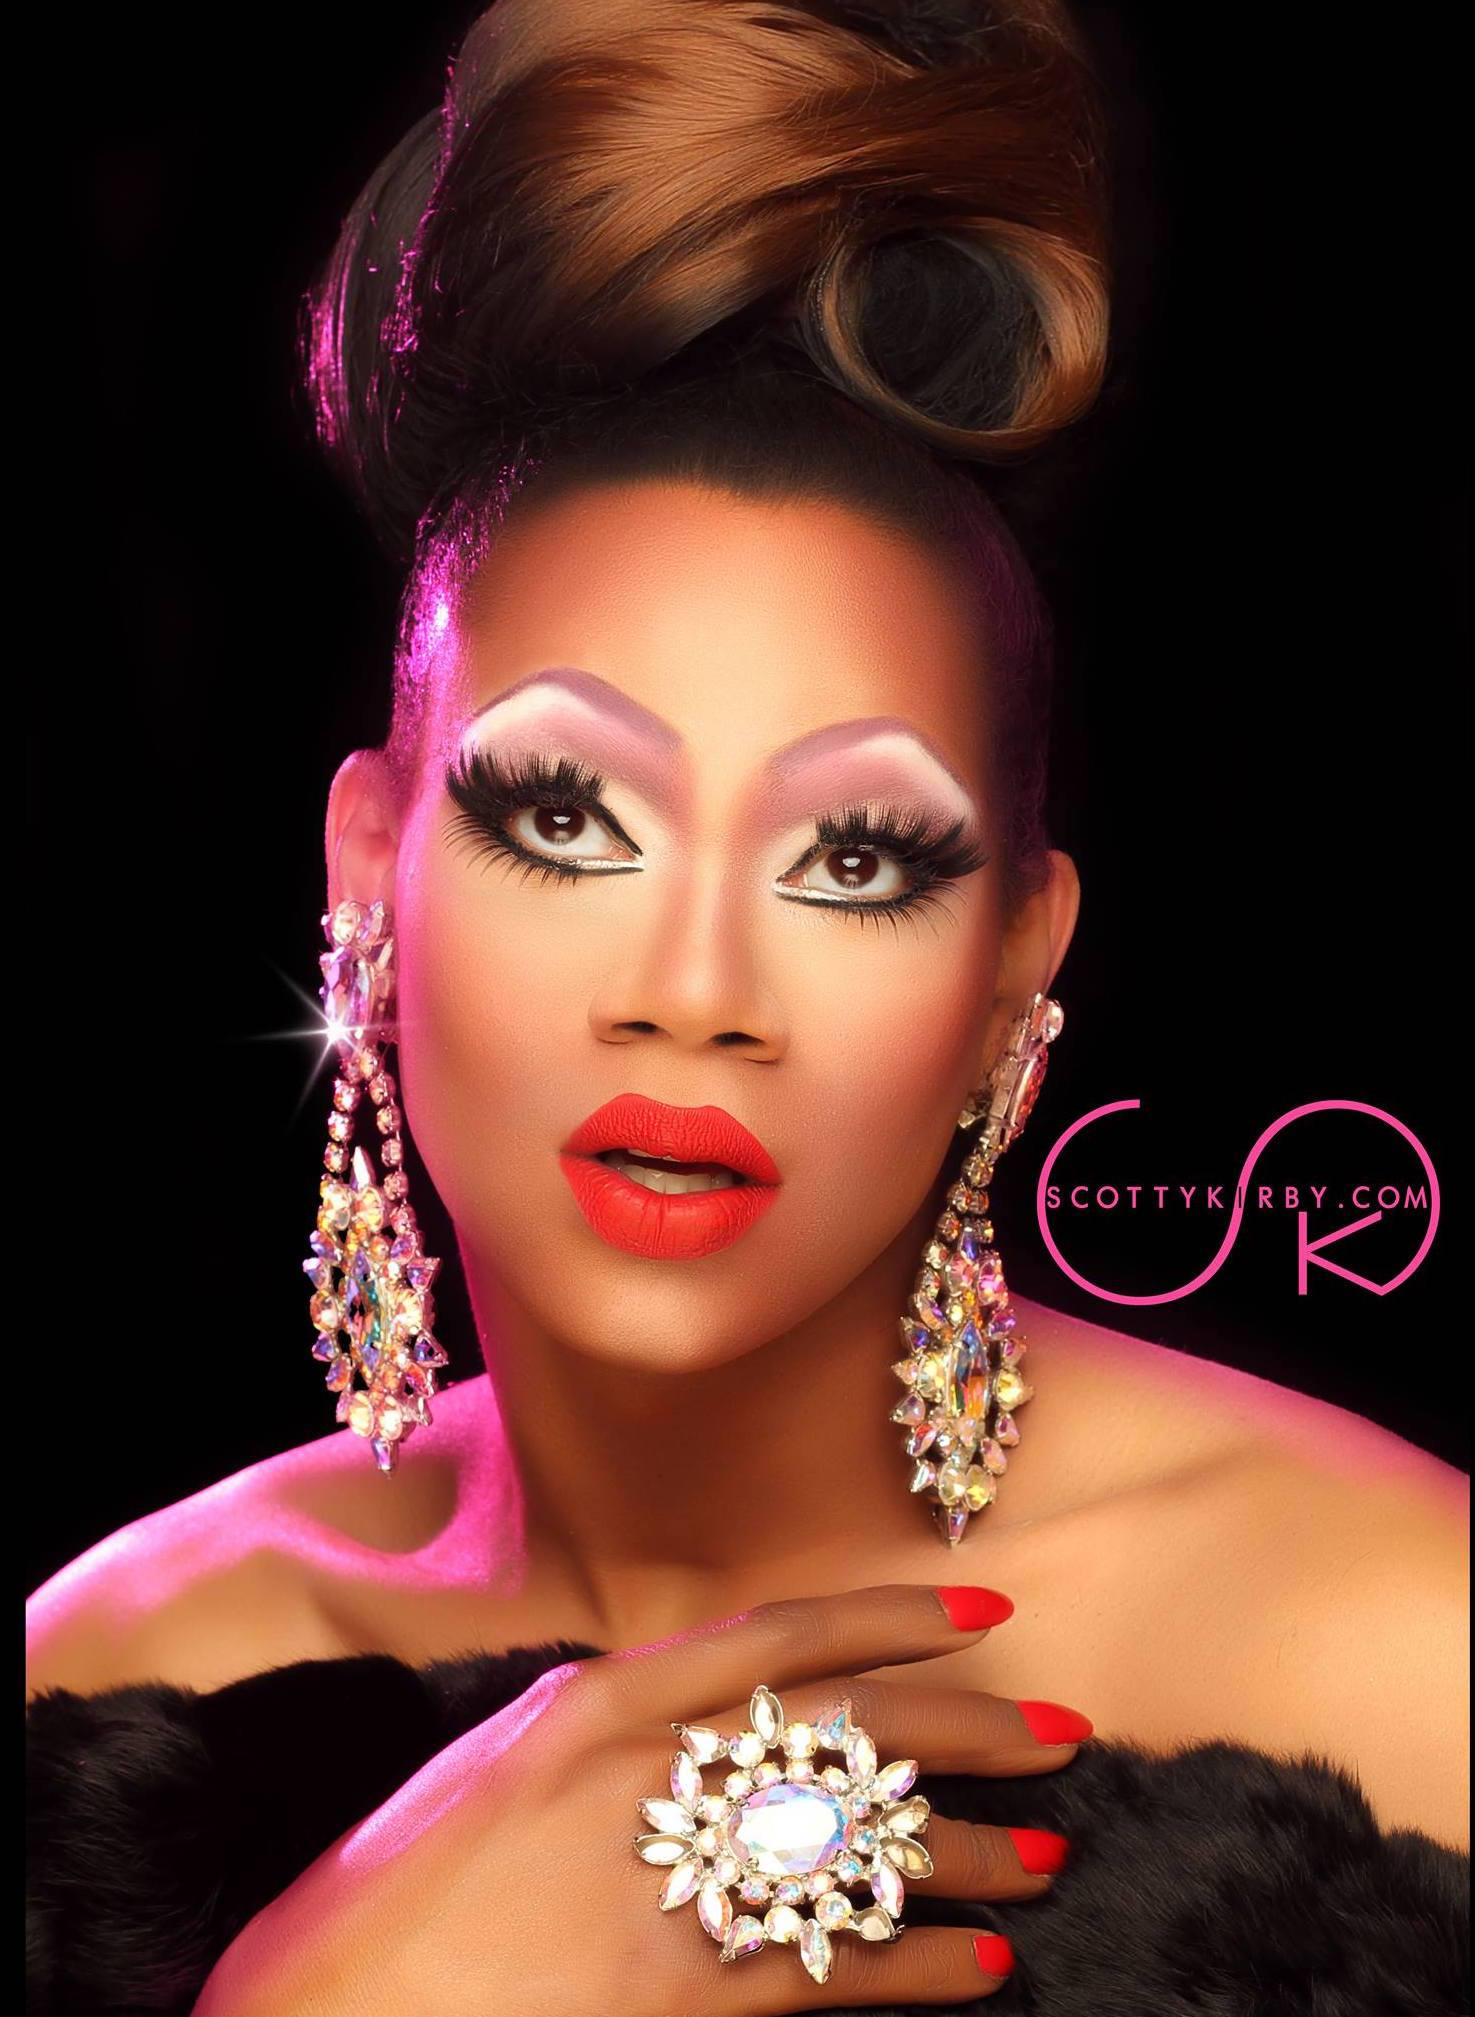 Chi Chi DeVayne - Photo by Scotty Kirby